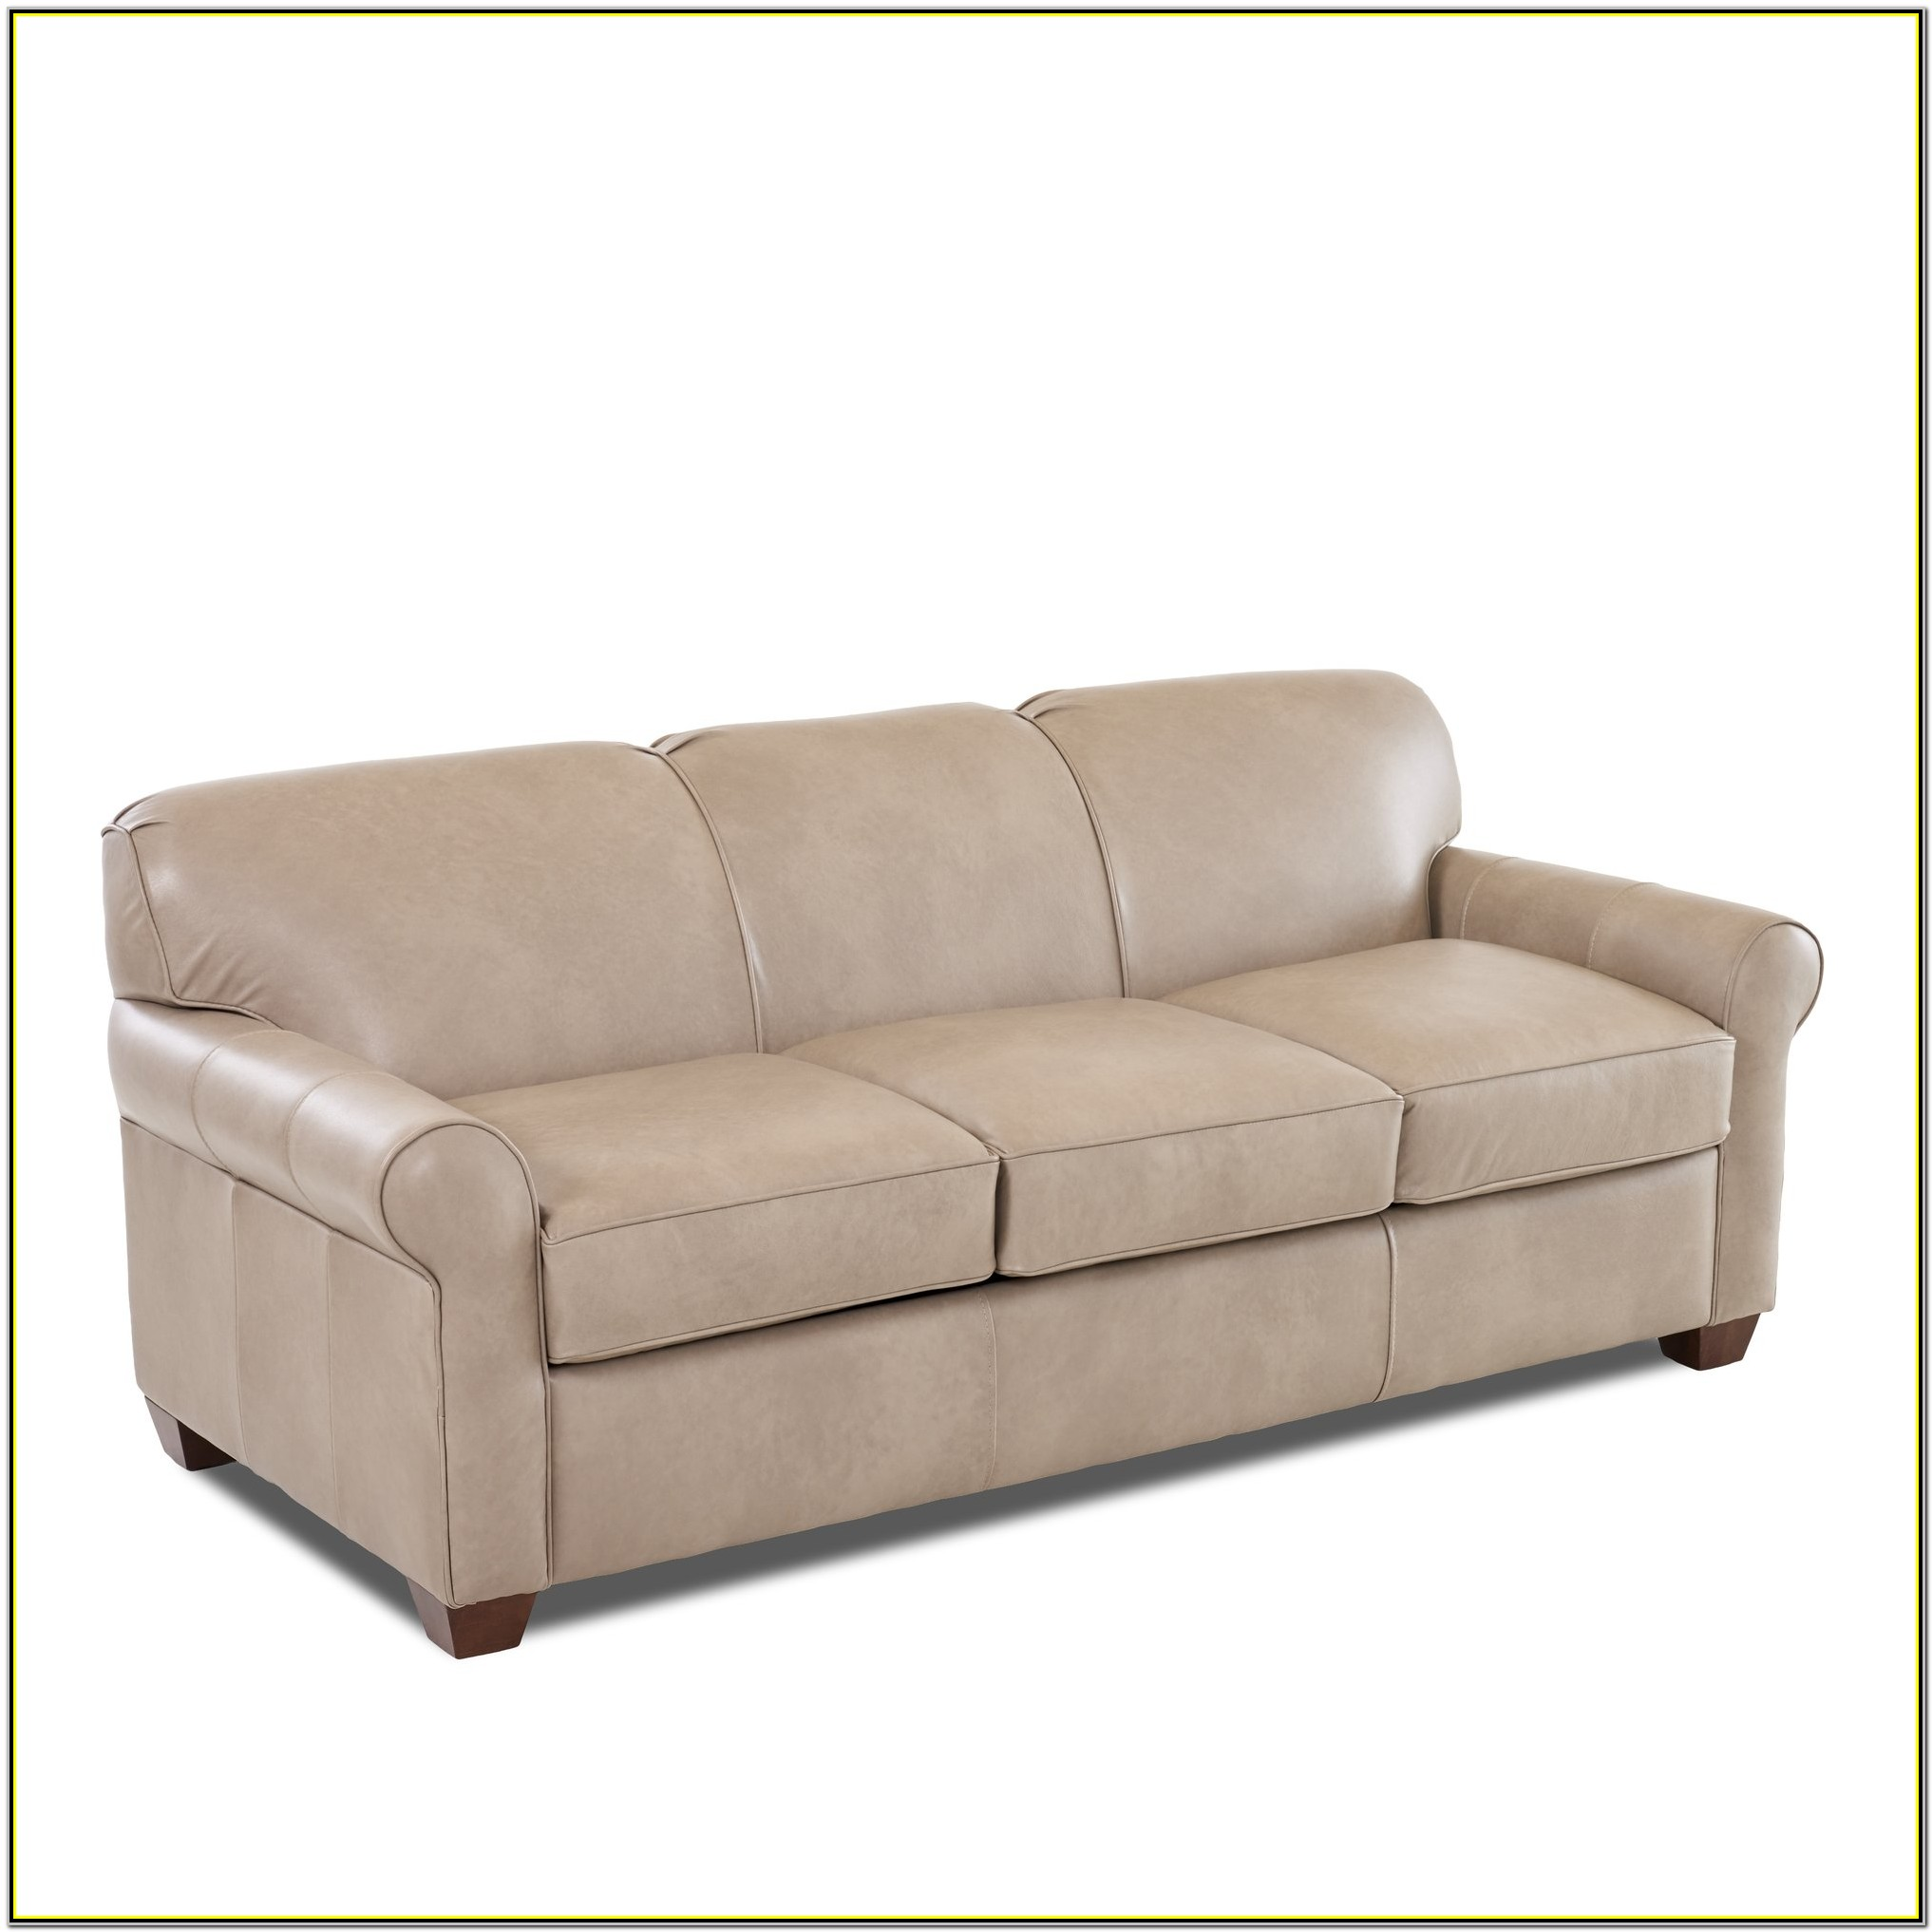 Jennifer Convertibles Sofa Bed Mattress